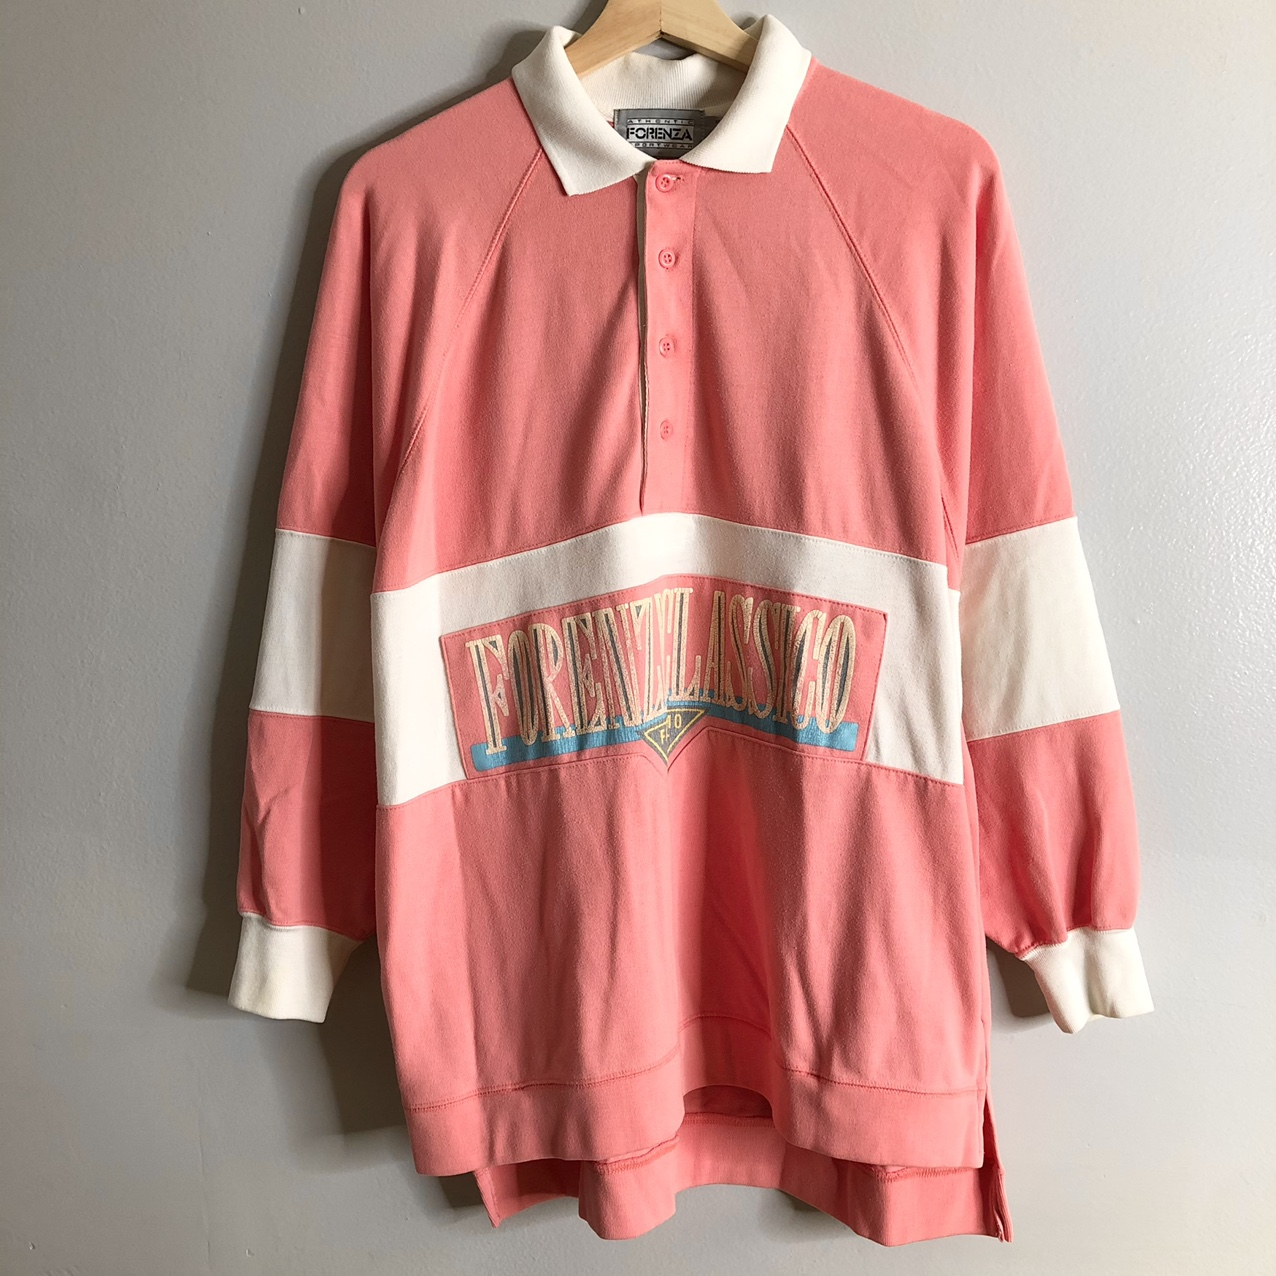 Product Image 1 - Vintage Forenza Sportswear Pink Rugby